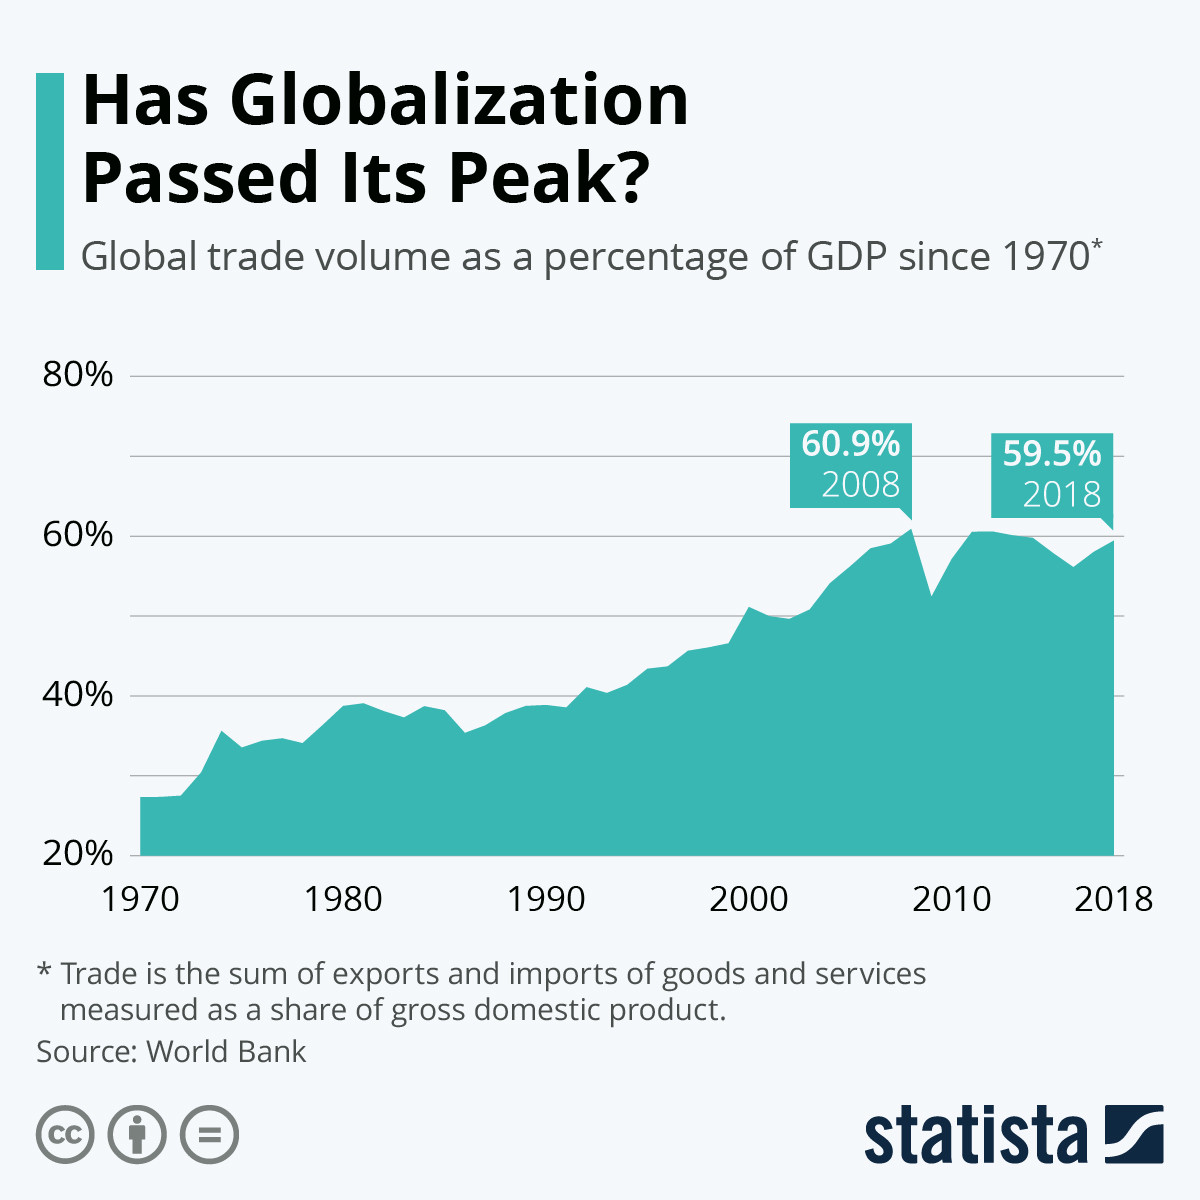 Global trade volume as a percentage of GDP since 1970.